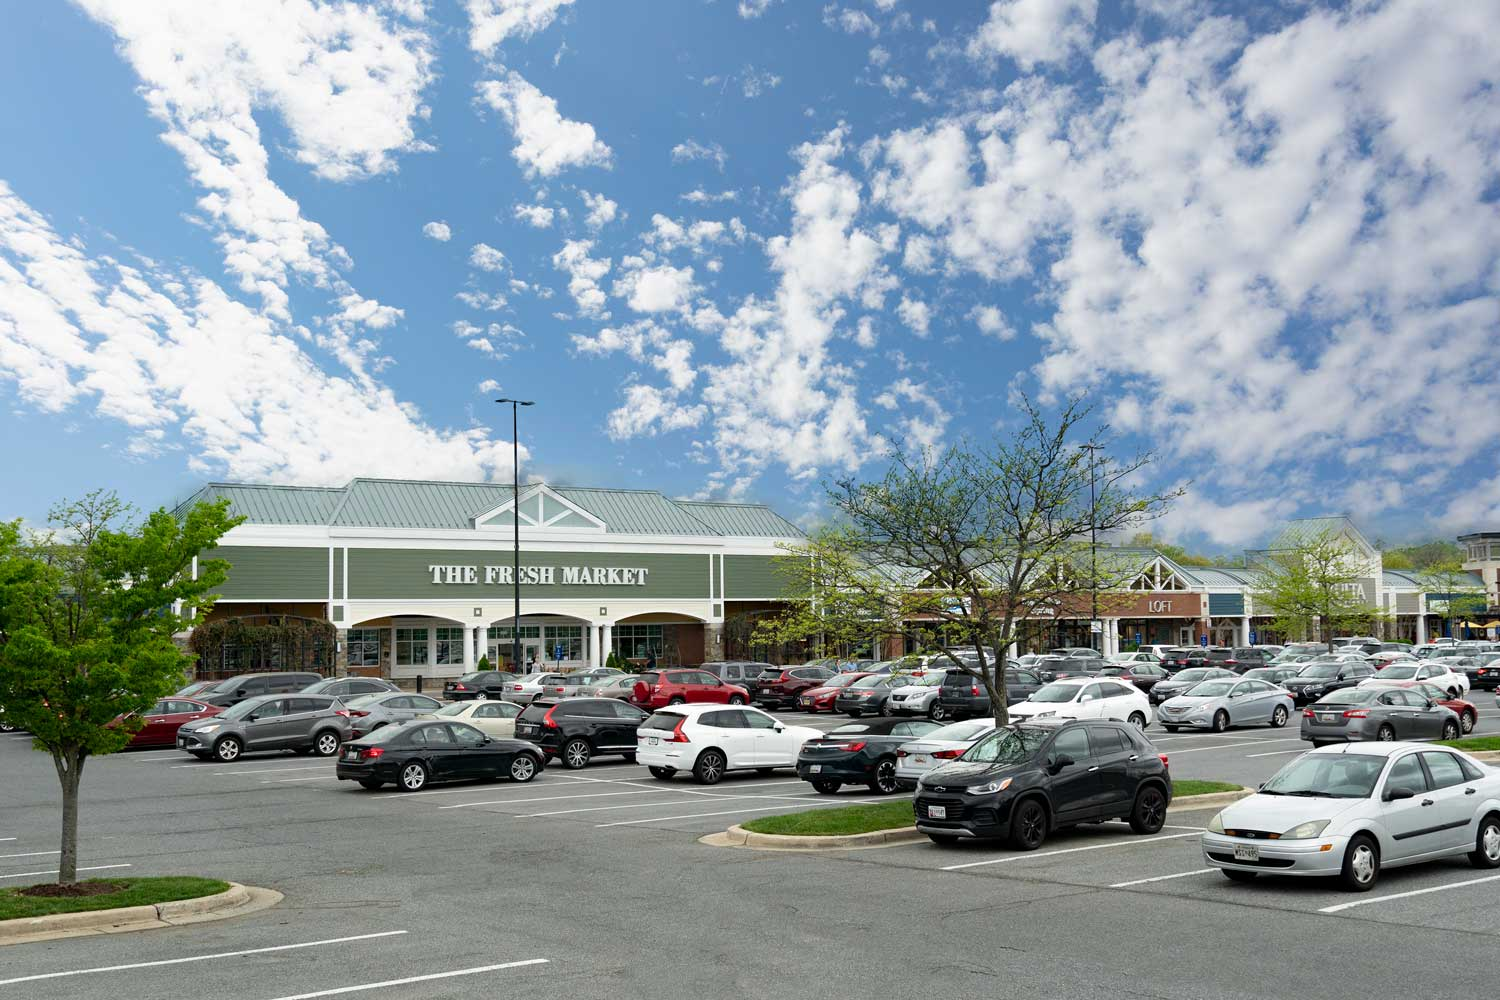 The Fresh Market is 5 minutes from Village Square West Apartments